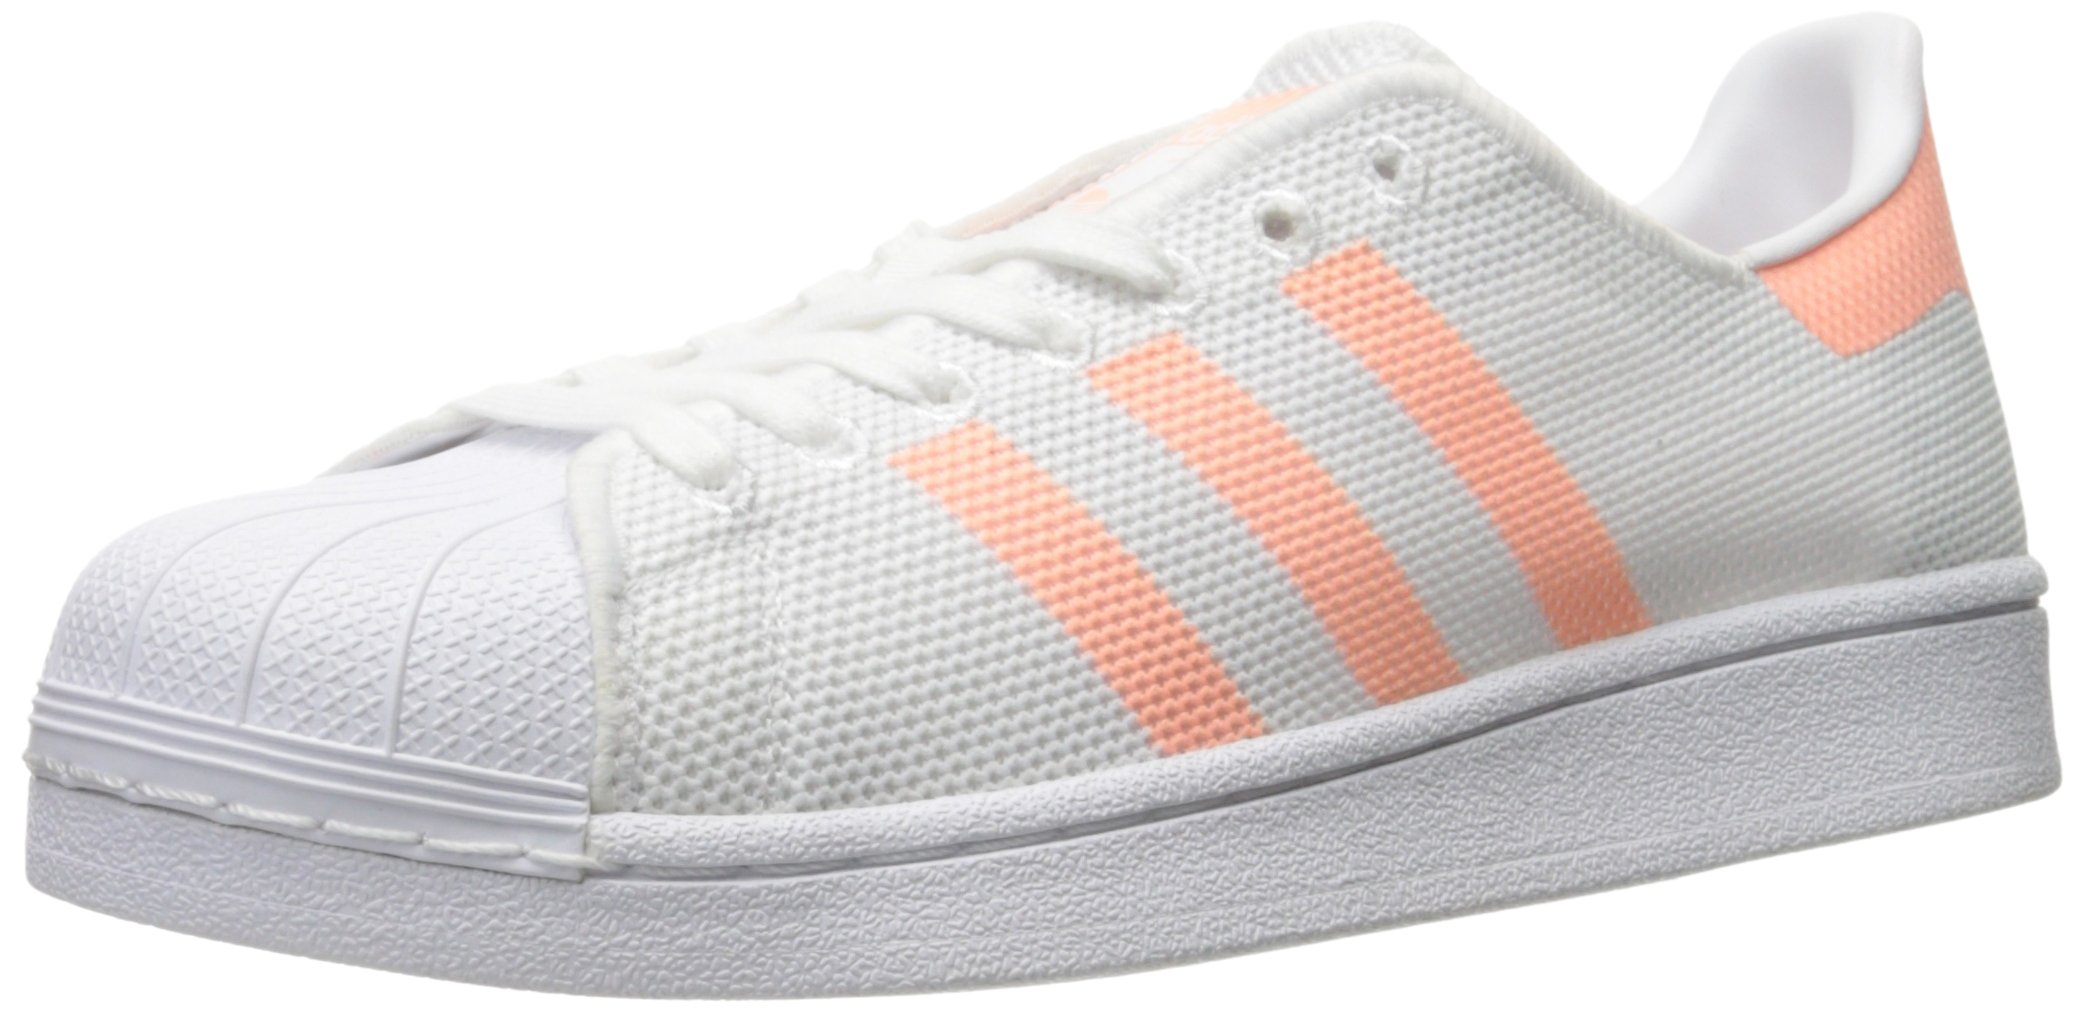 adidas Originals Women's Shoes Superstar Fashion Sneakers, White/Sun Glow/White, (6.5 M US)